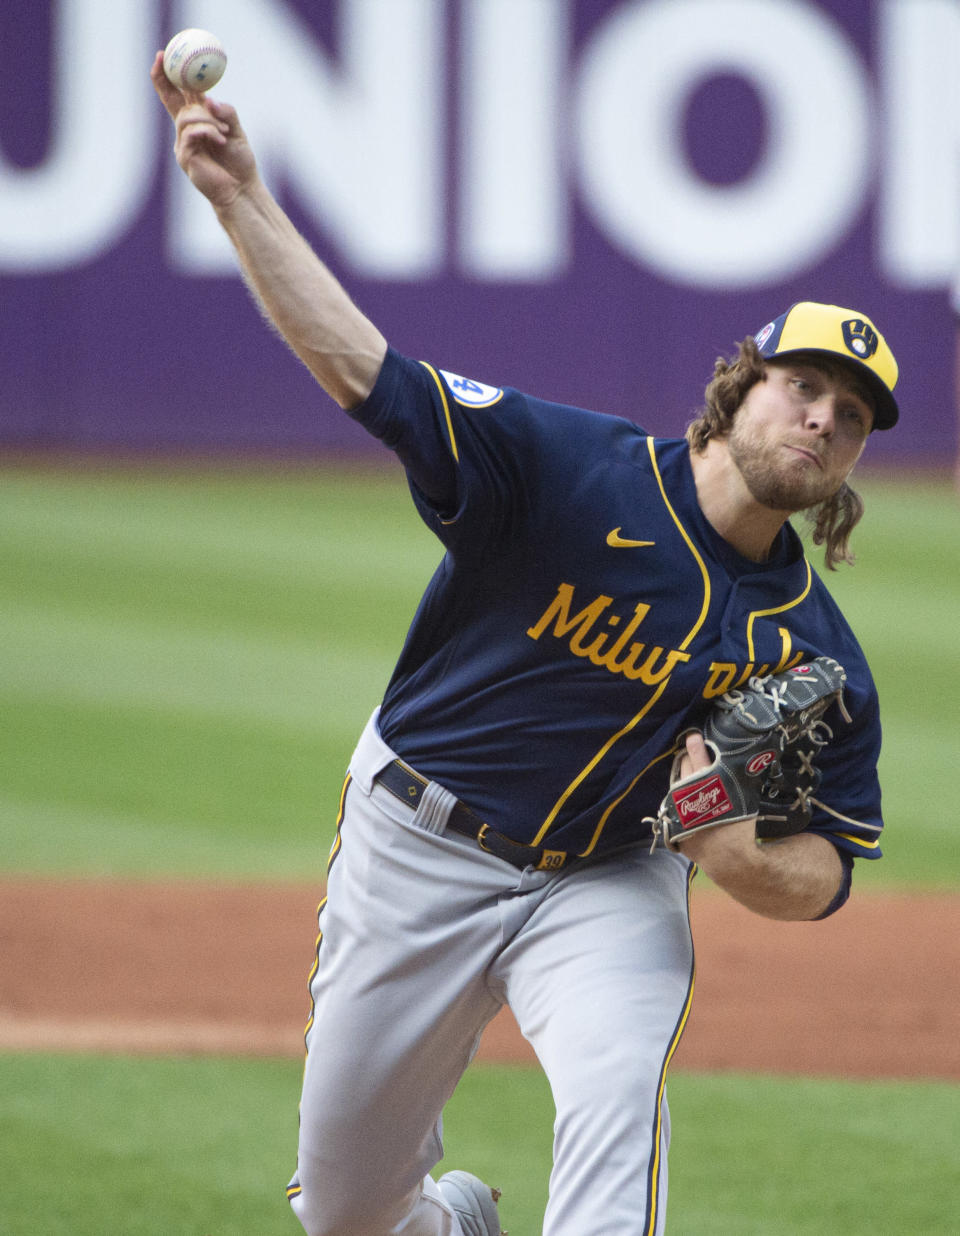 Milwaukee Brewers starting pitcher Corbin Burnes delivers against the Cleveland Indians during the first inning of a baseball game in Cleveland, Saturday, Sept. 11, 2021. (AP Photo/Phil Long)